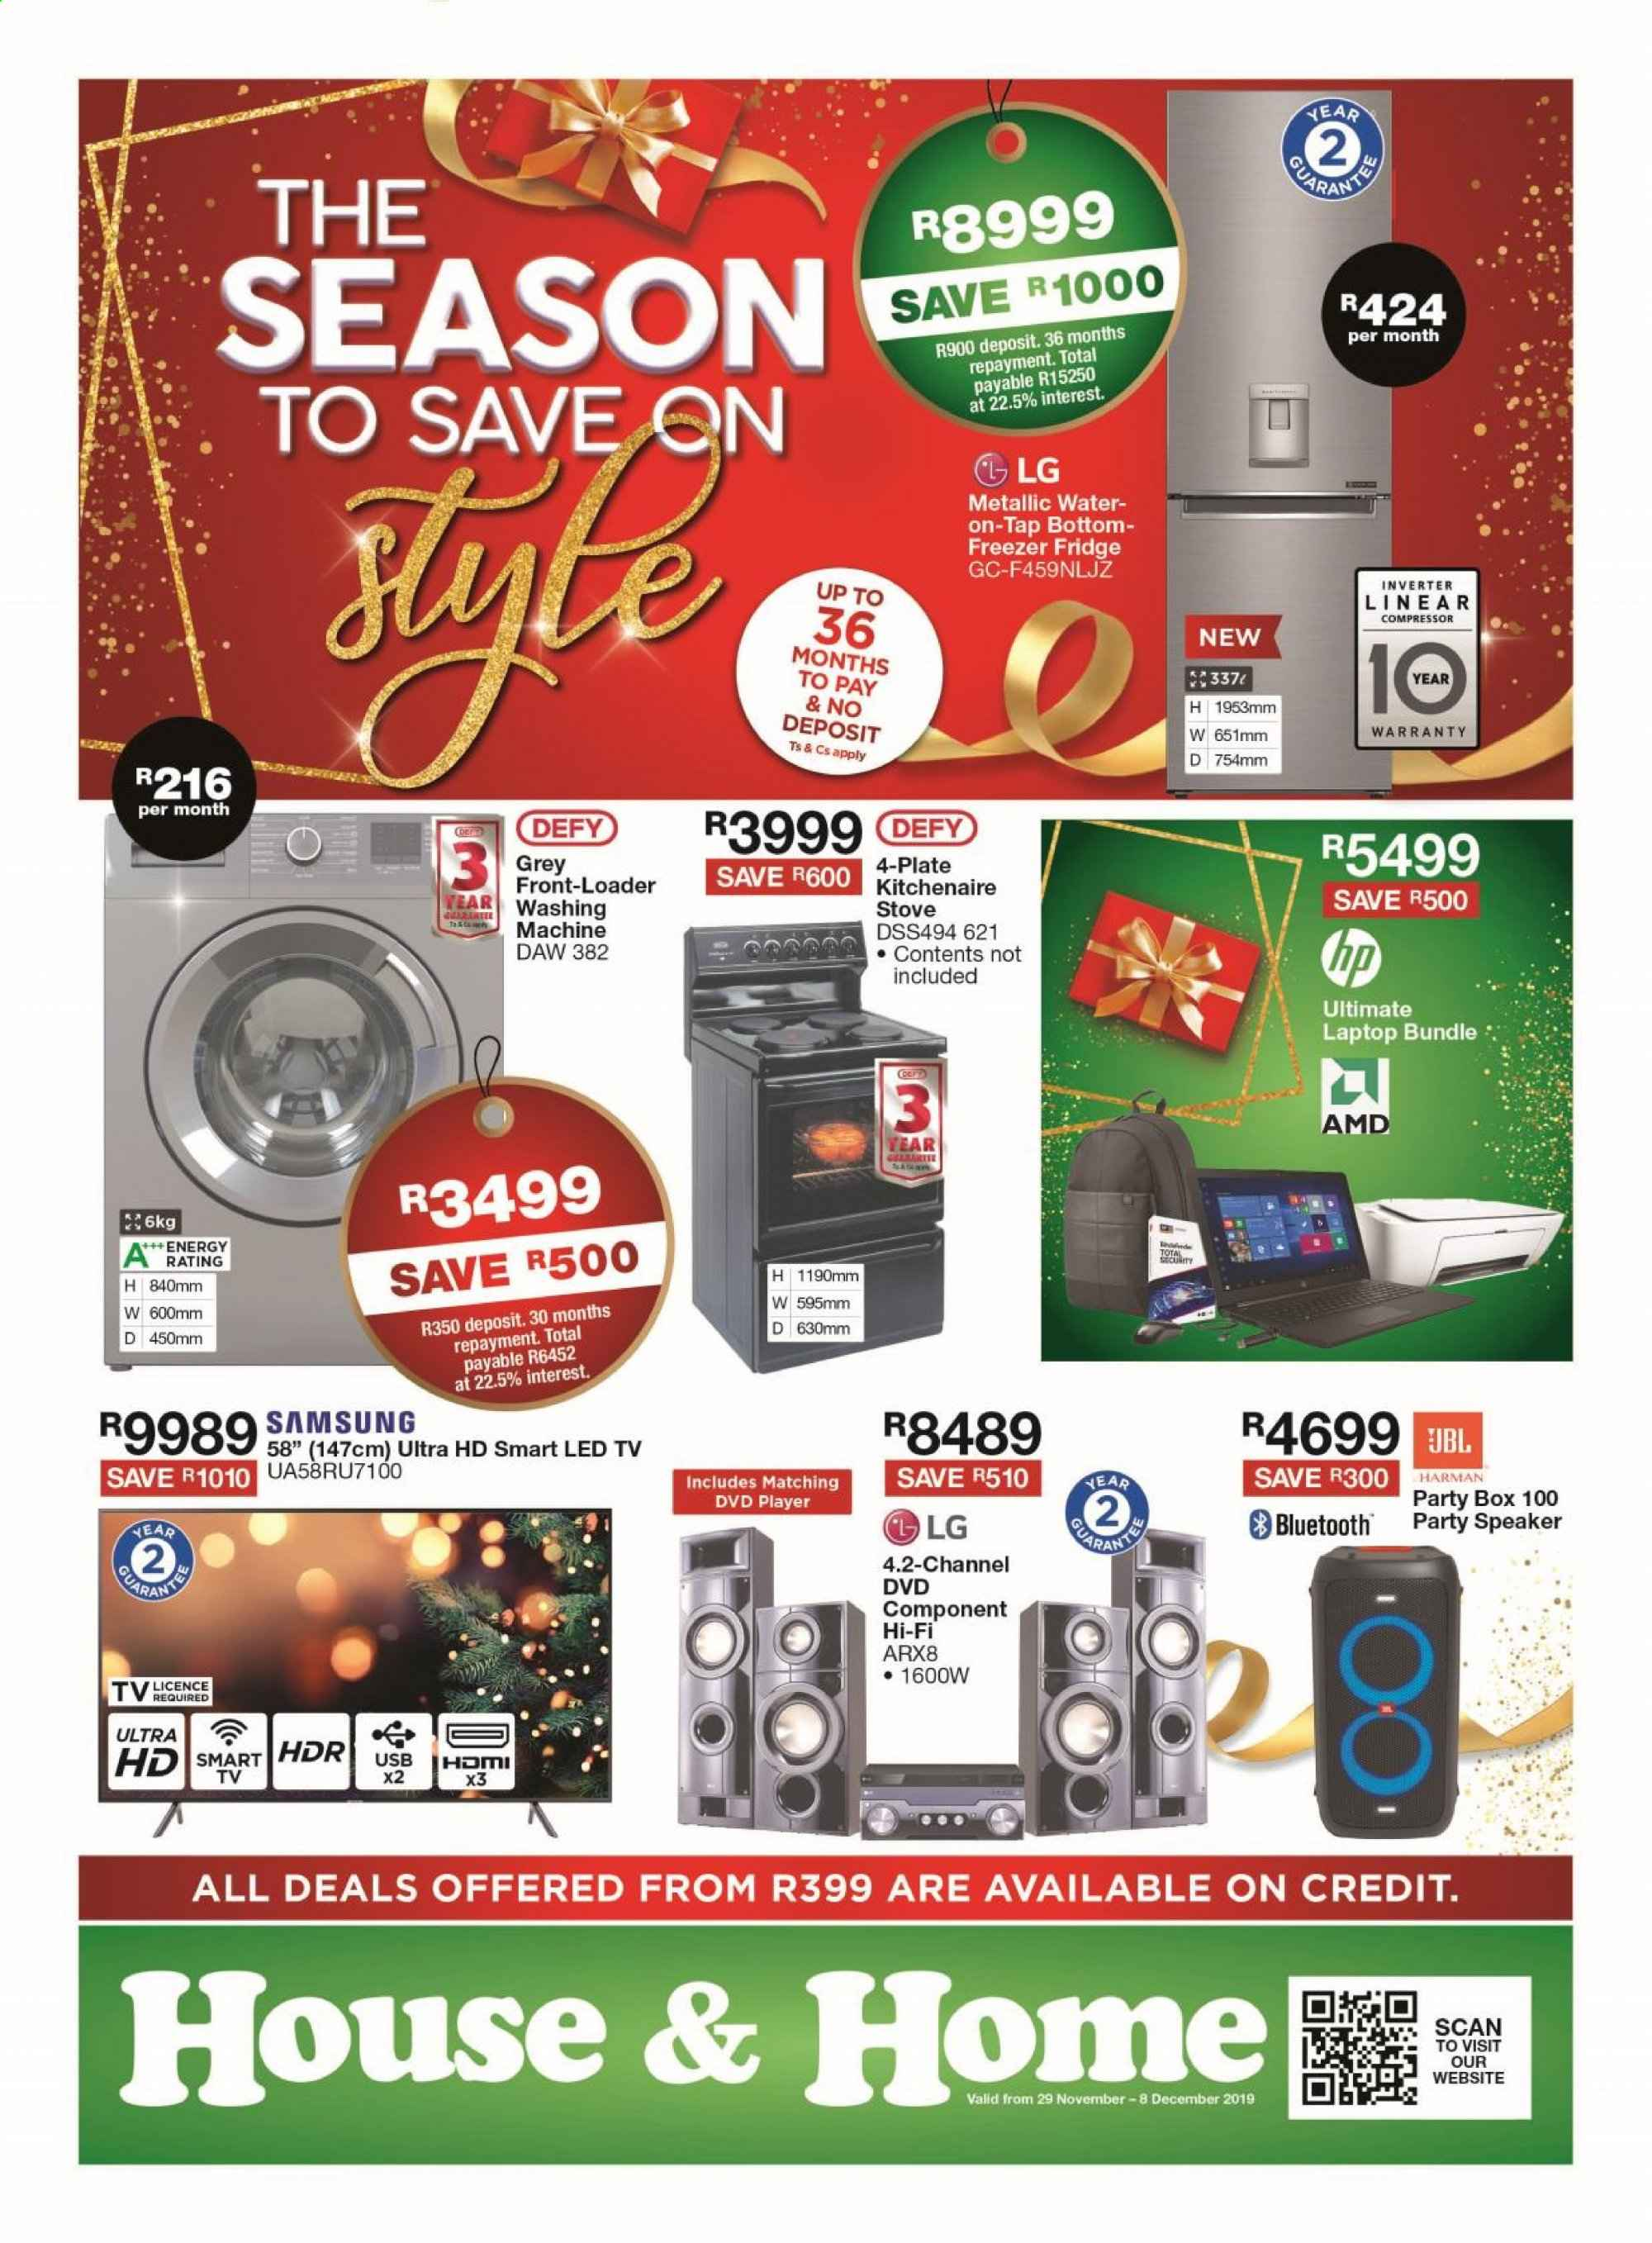 House & Home catalogue  - 11.29.2019 - 12.08.2019. Page 1.